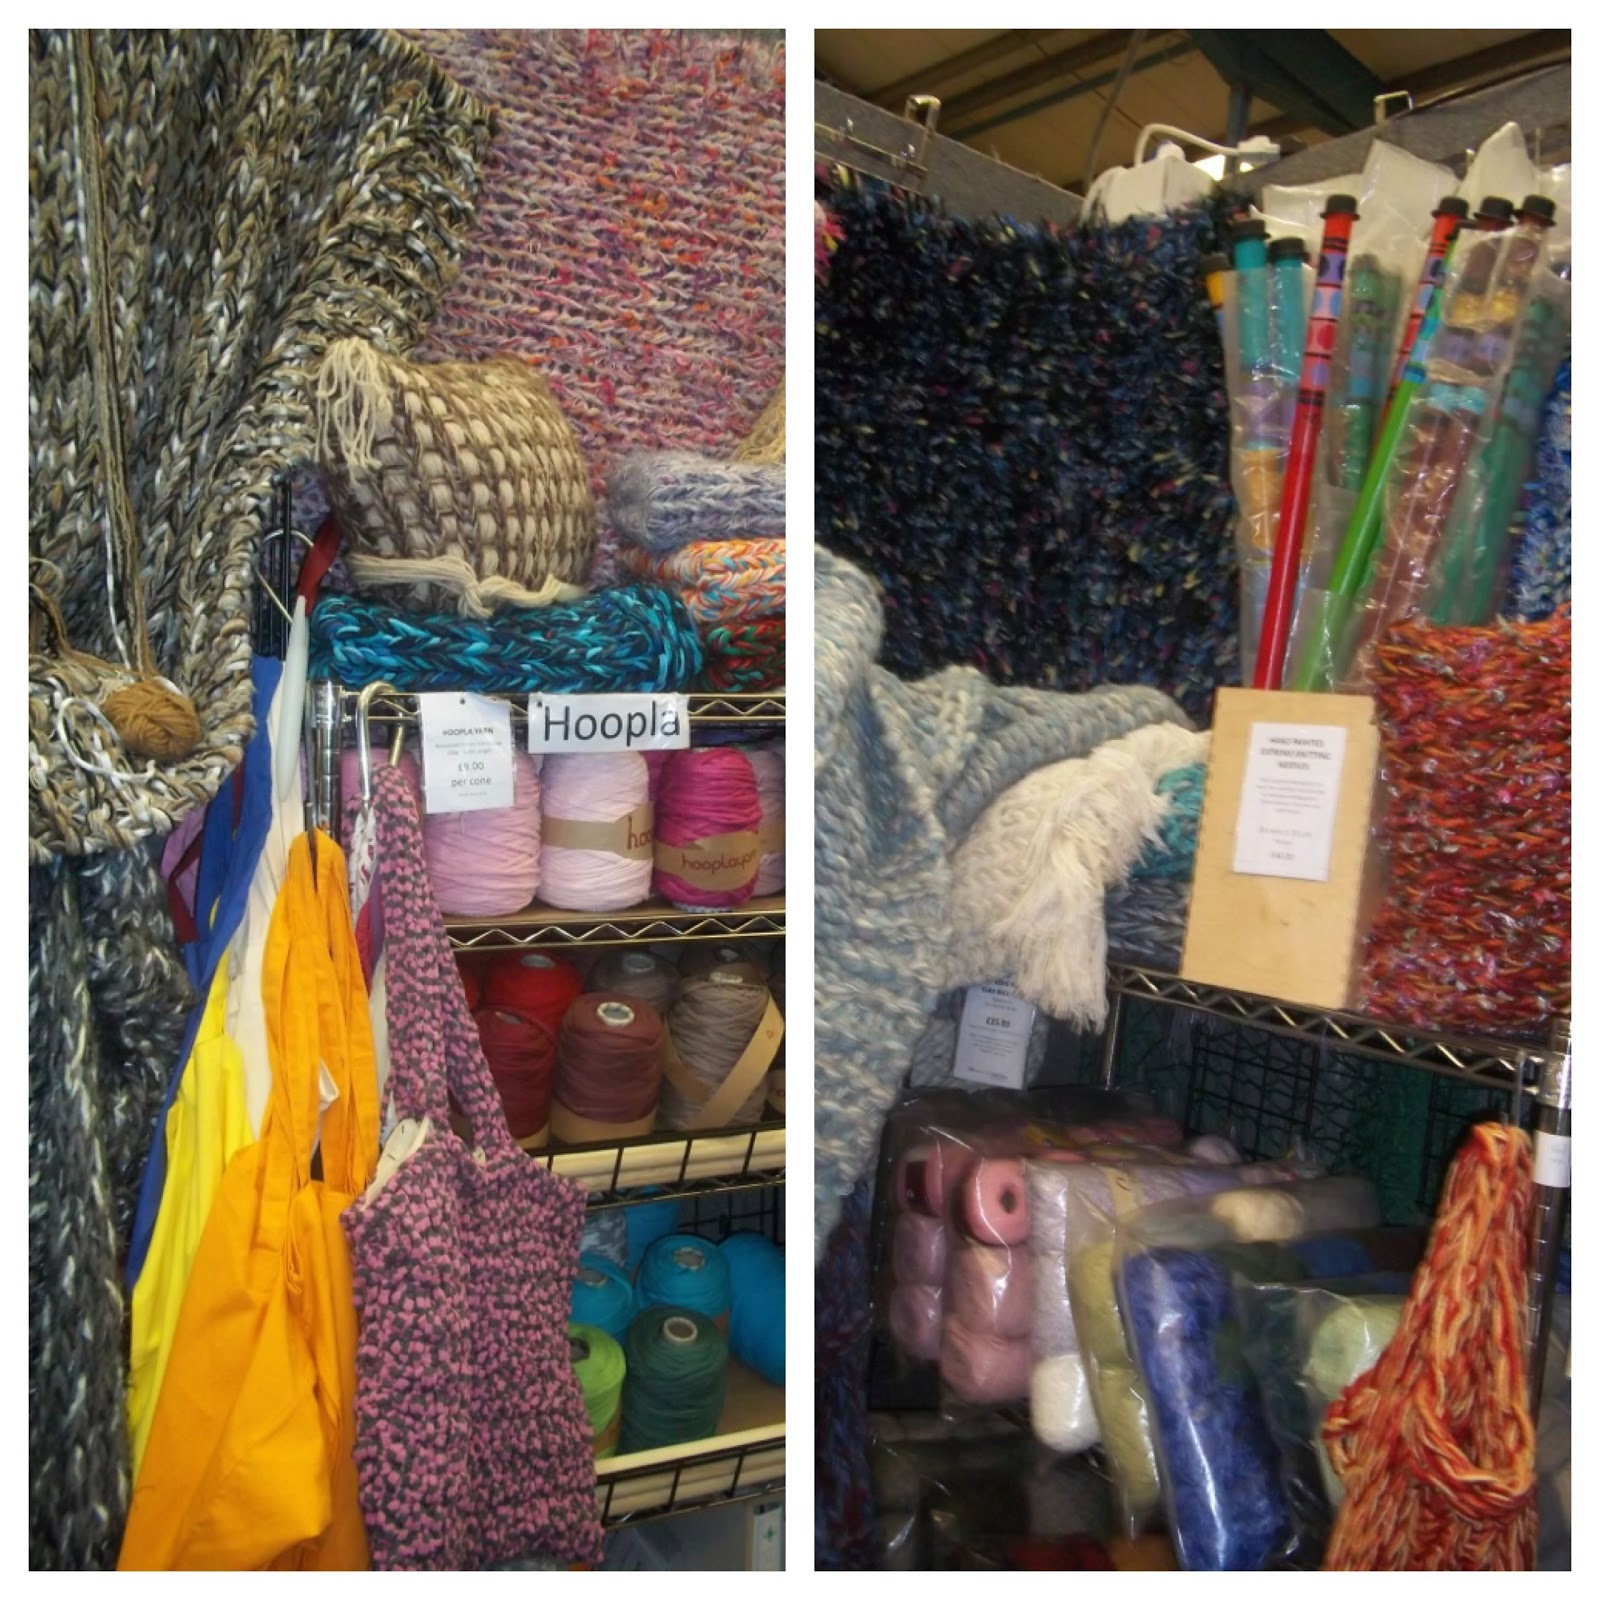 Knit And Stitch Show Shepton Mallet : HMT Mixed Media Artist: EXTREME KNITTING